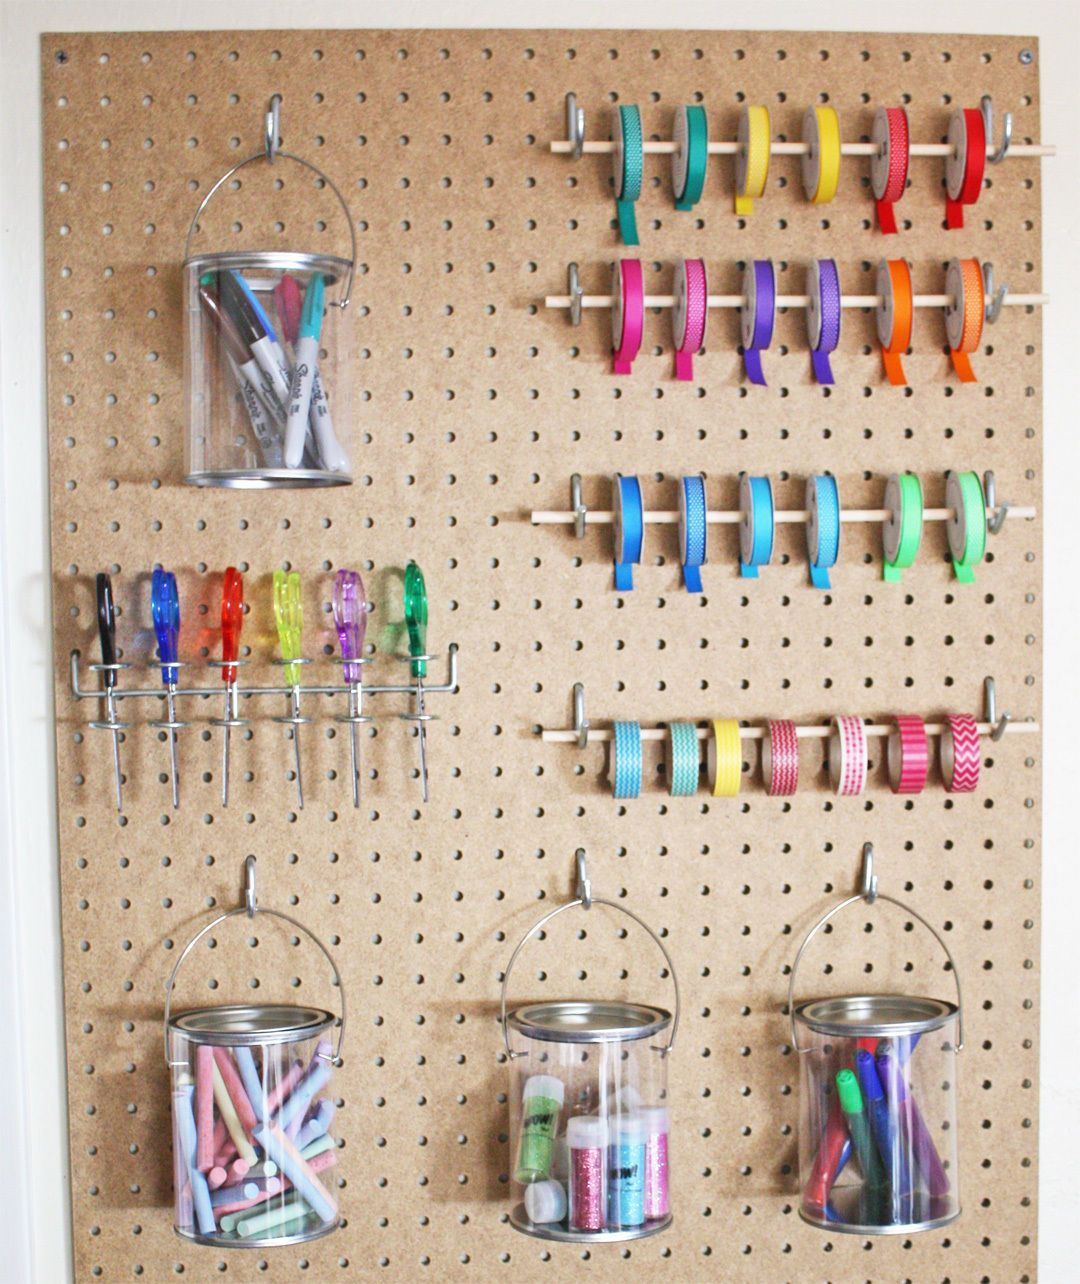 29+ Craft room pegboard ideas ideas in 2021